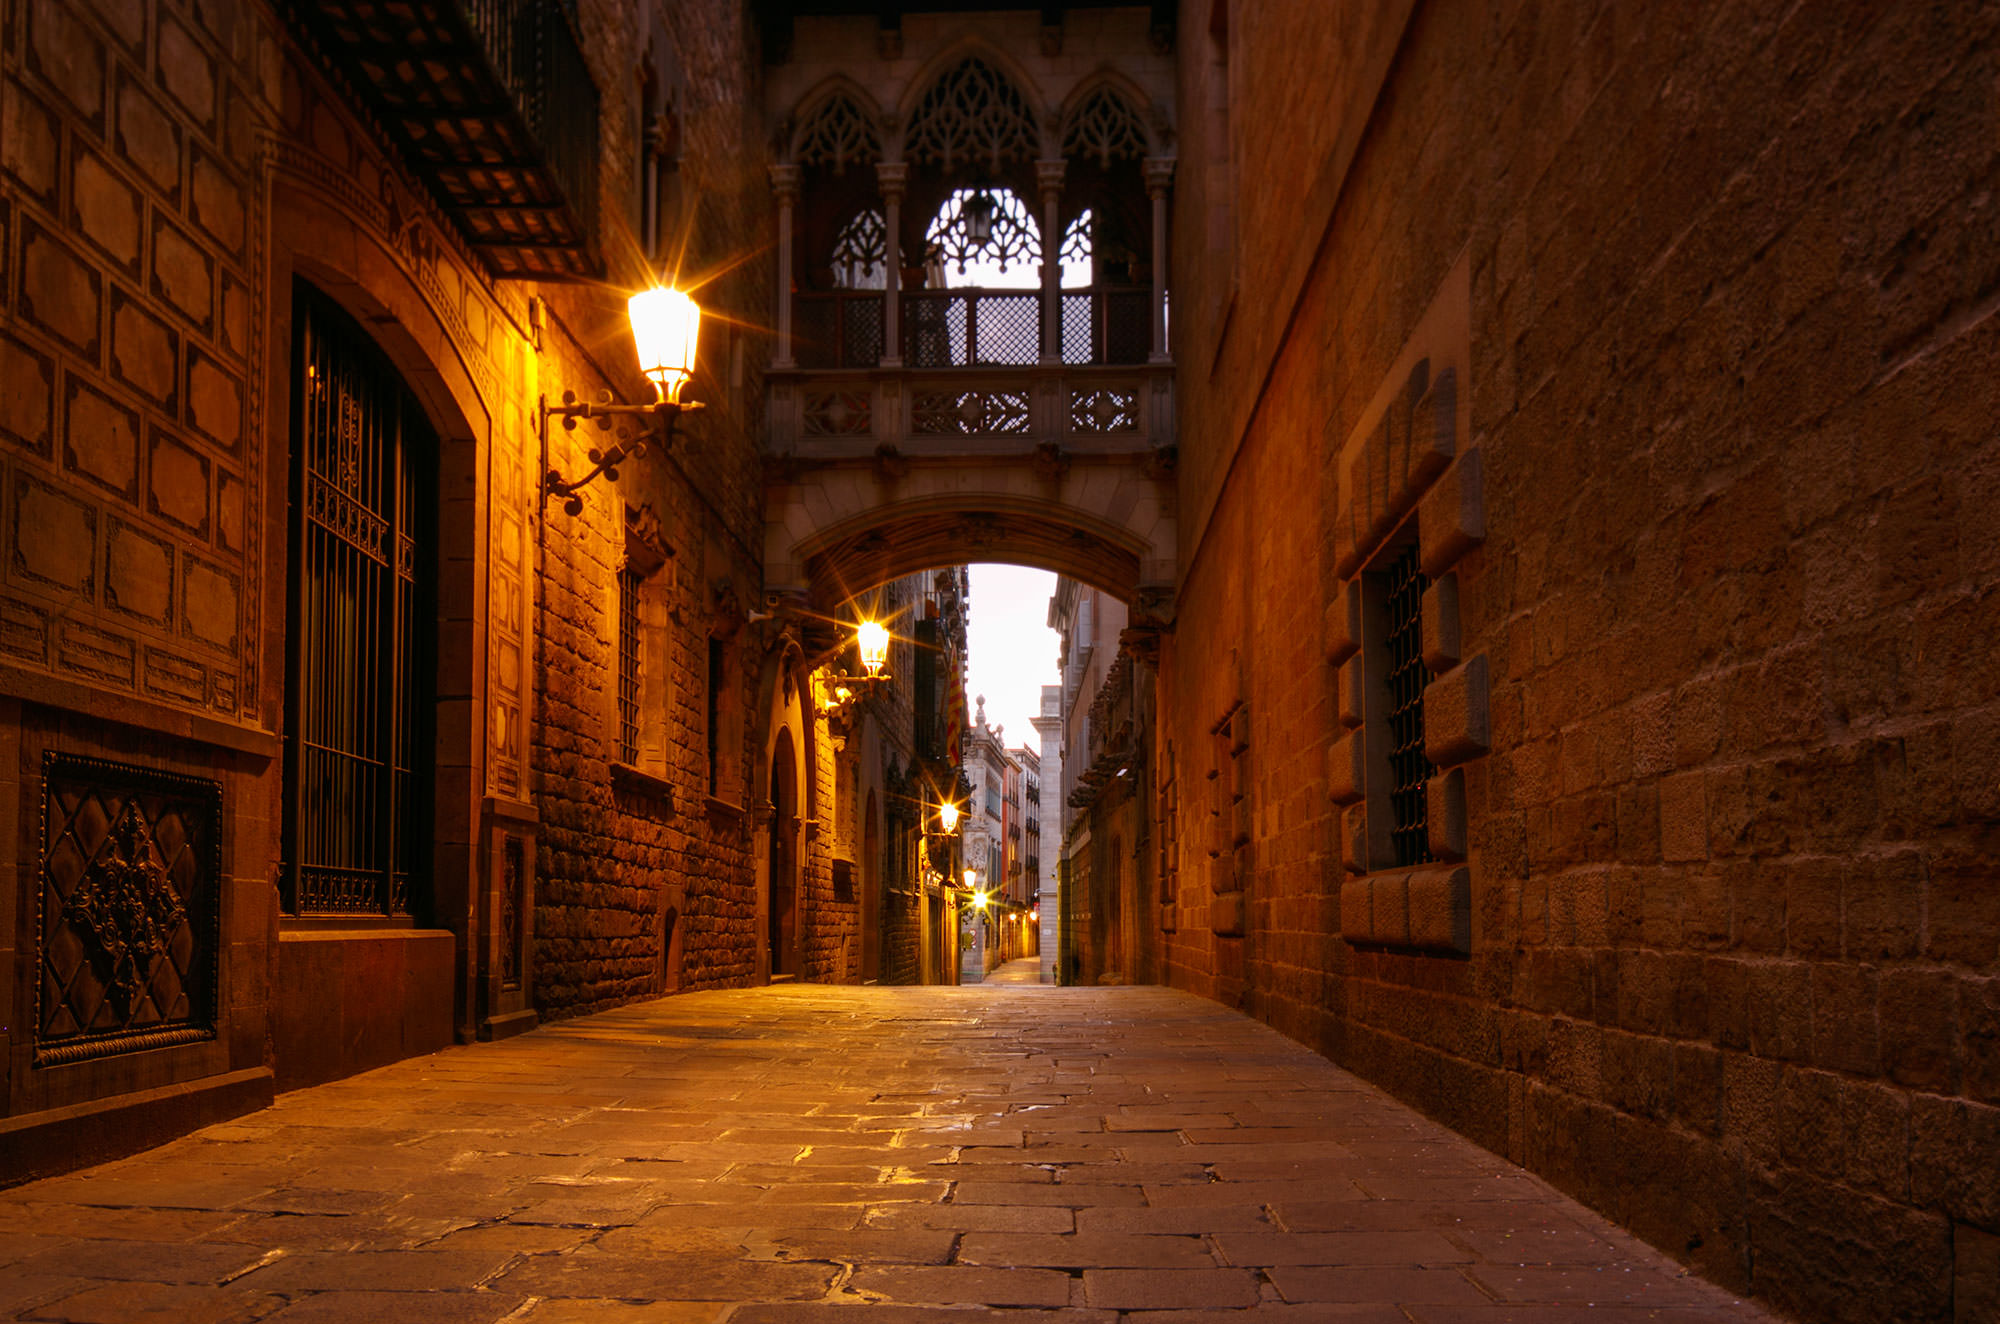 Double Arch on Carrer del Bisbe Street in Barcelona